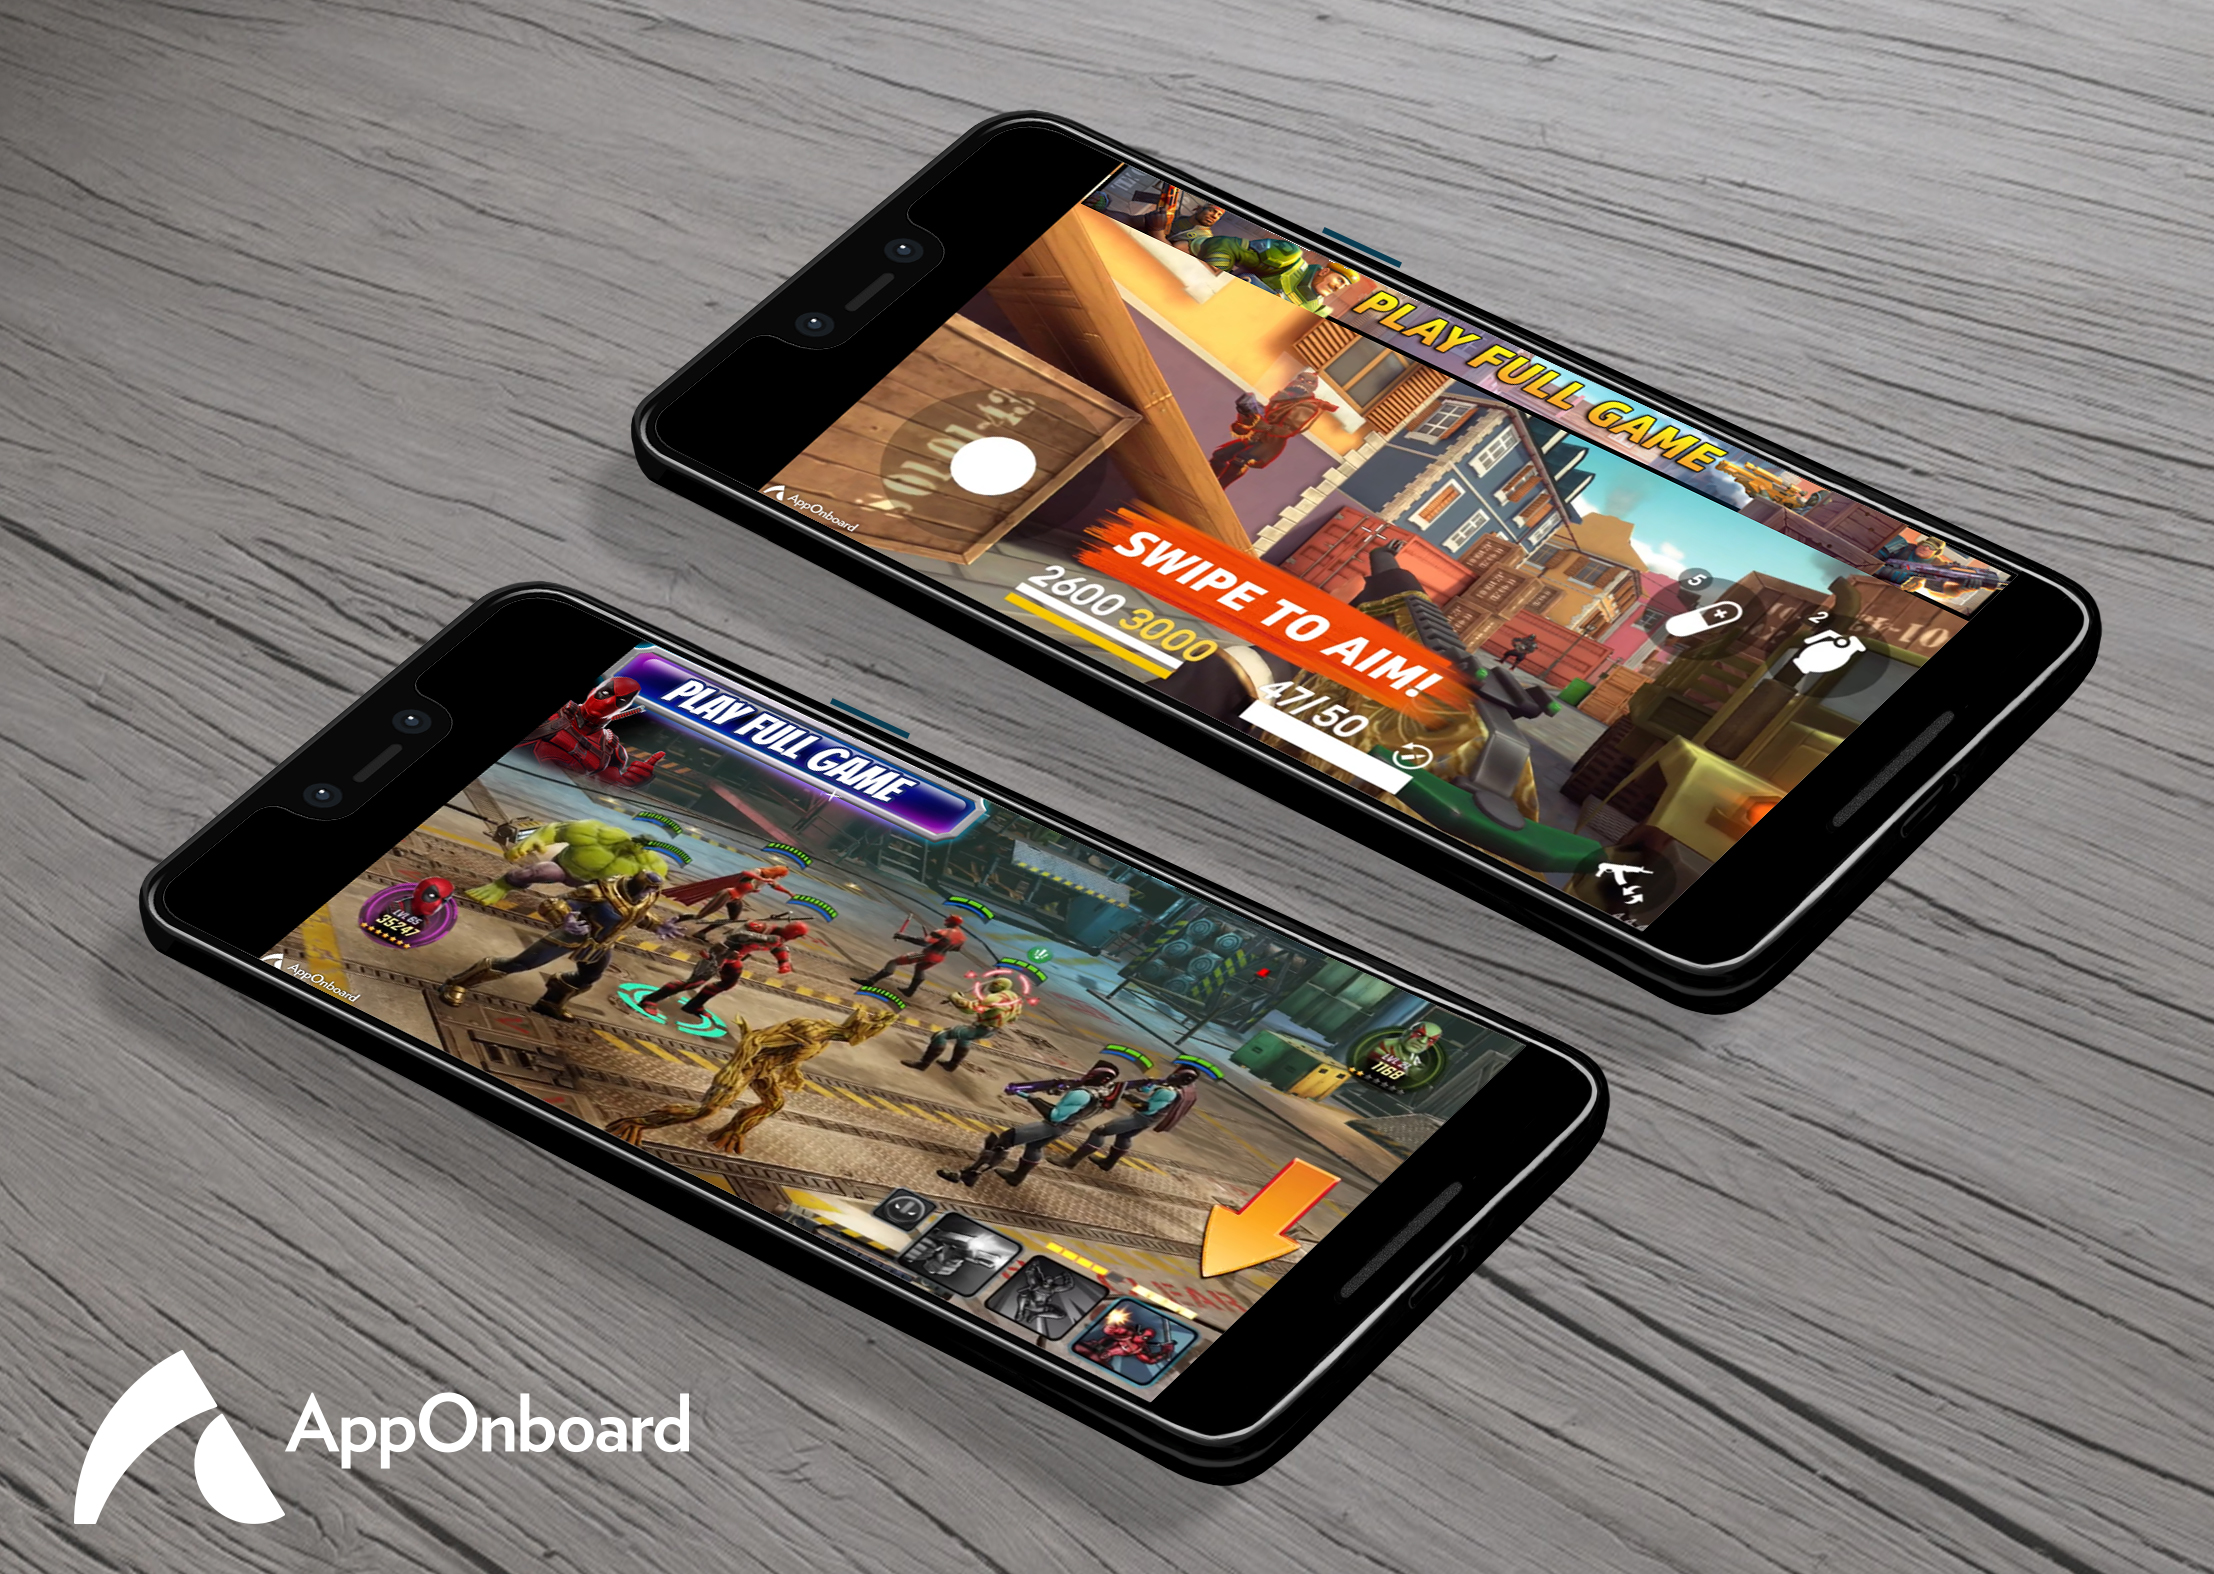 9deb82e0fad ... AppOnboard raises $15 million to let Android users try before they buy  apps on Google Play